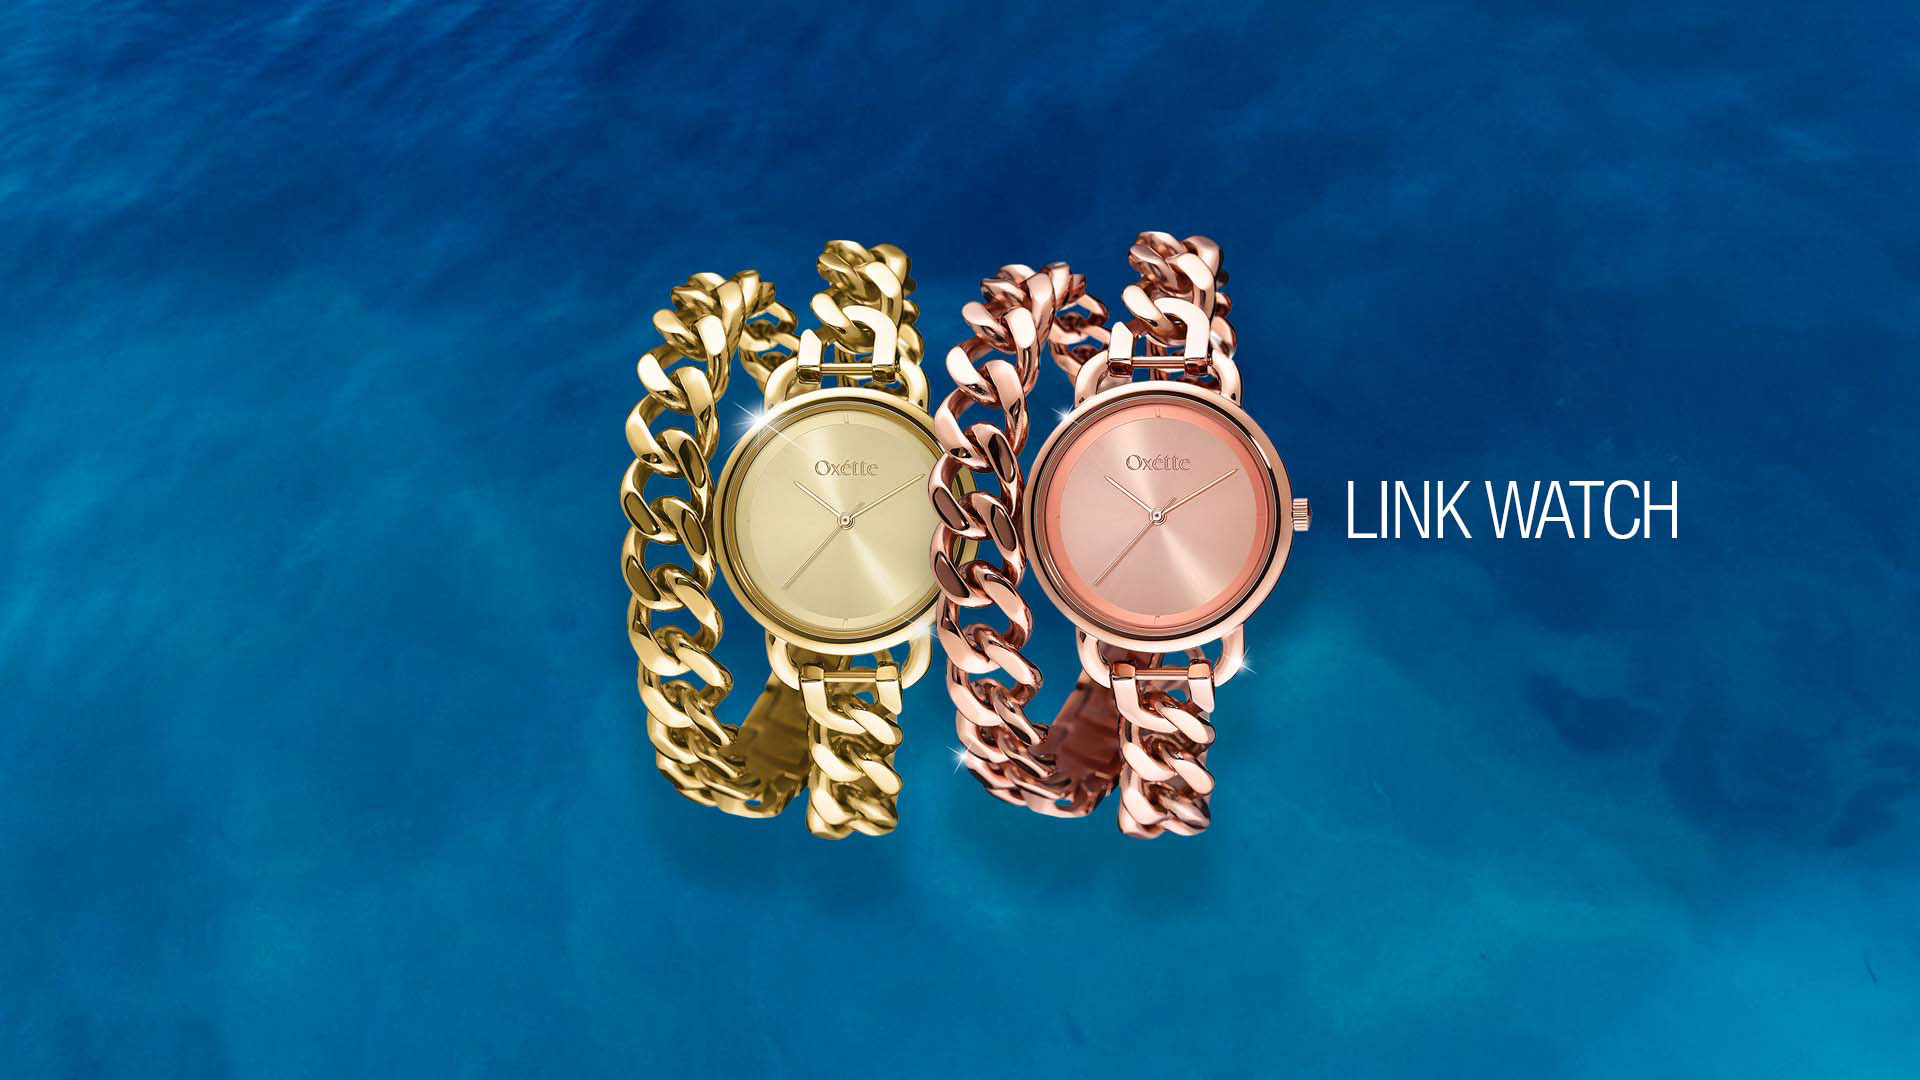 Link watches - Oxette